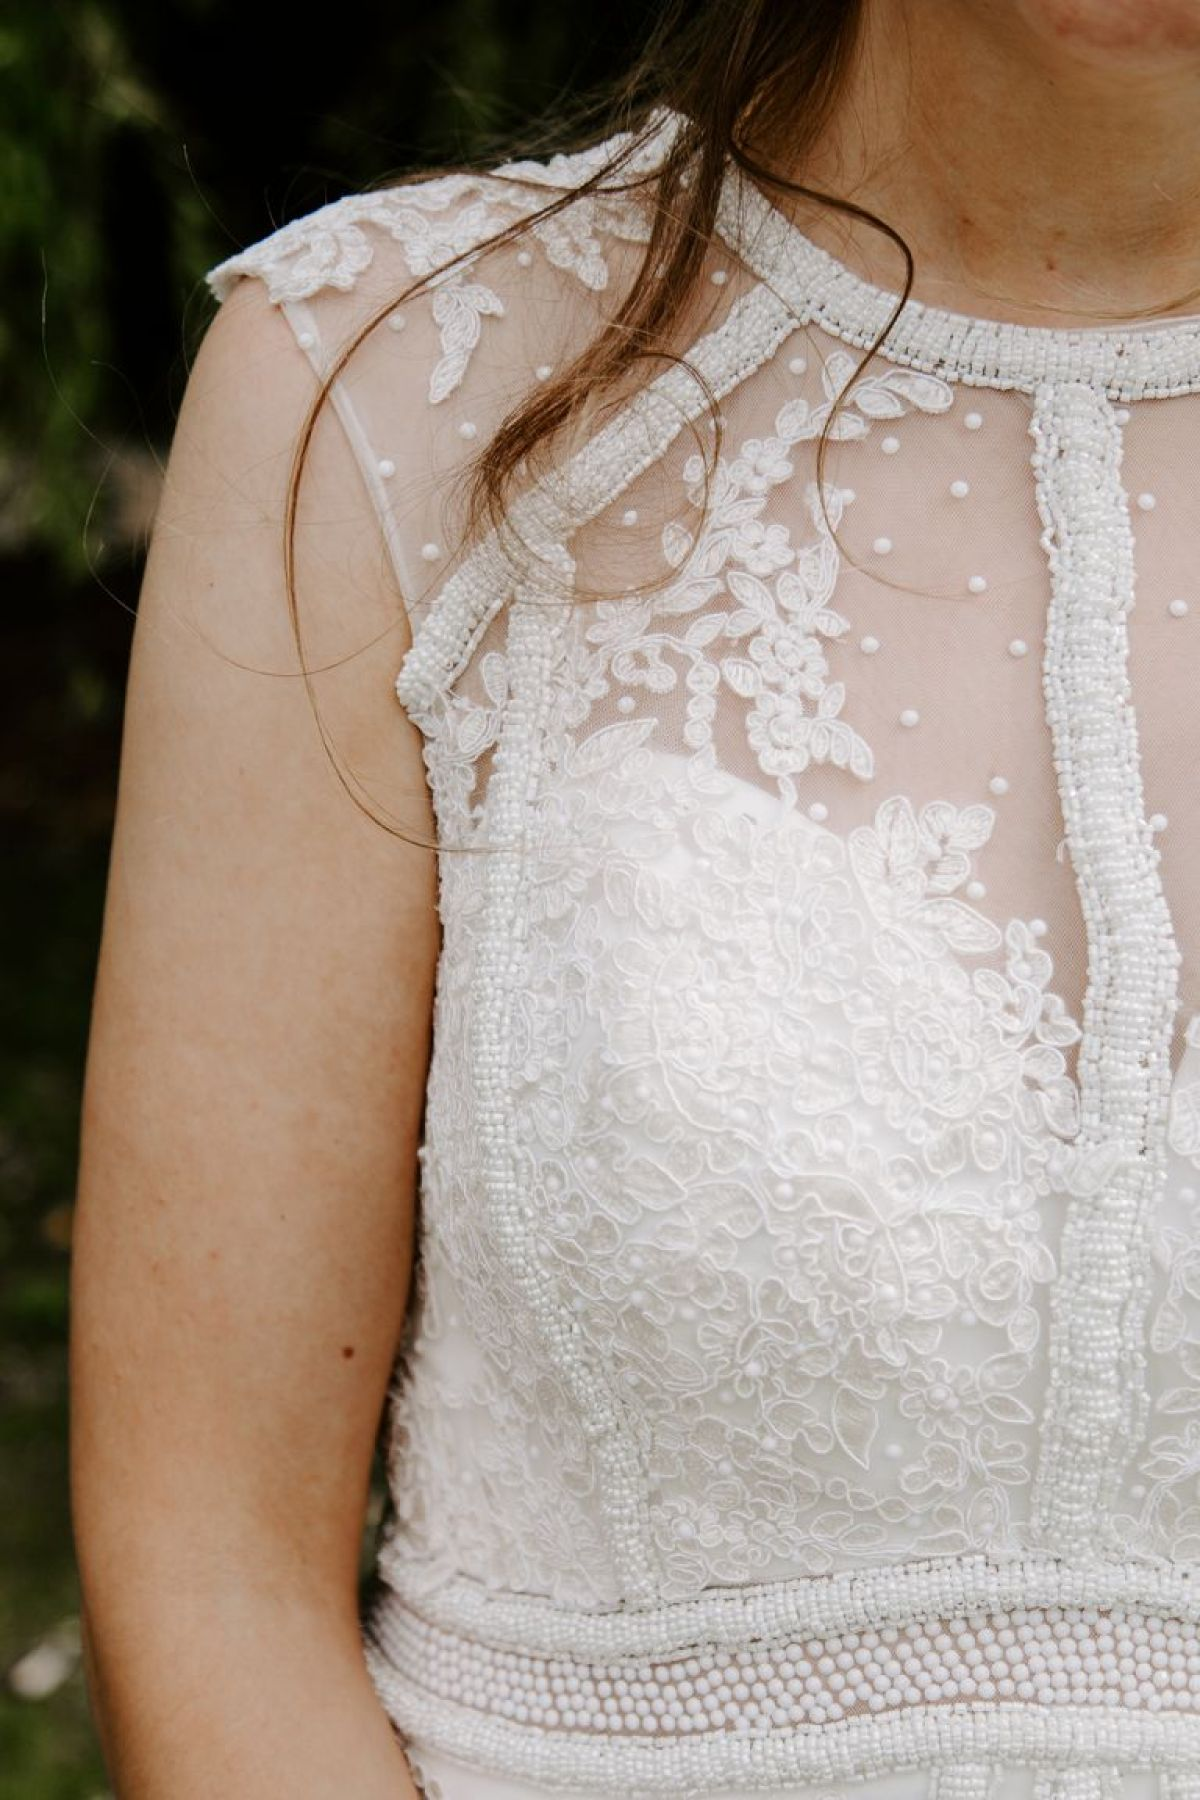 Boho bride wearing a beaded white dress